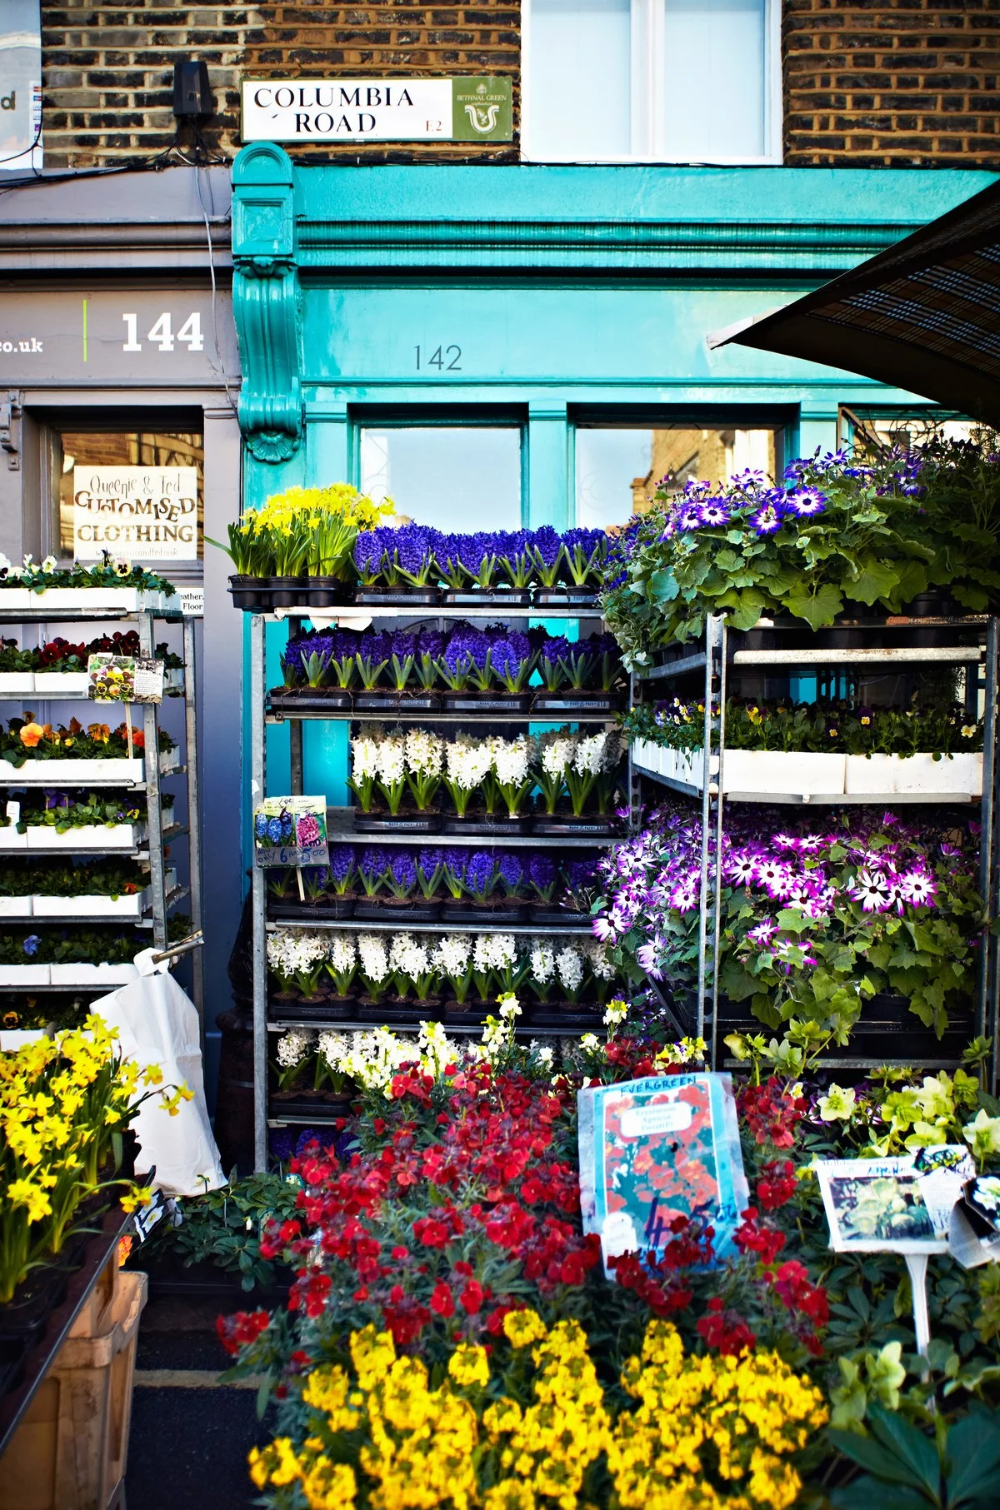 Columbia Road Flower Market London United Kingdom Market Review In 2020 Columbia Road Flower Market Things To Do In London Secret Places In London